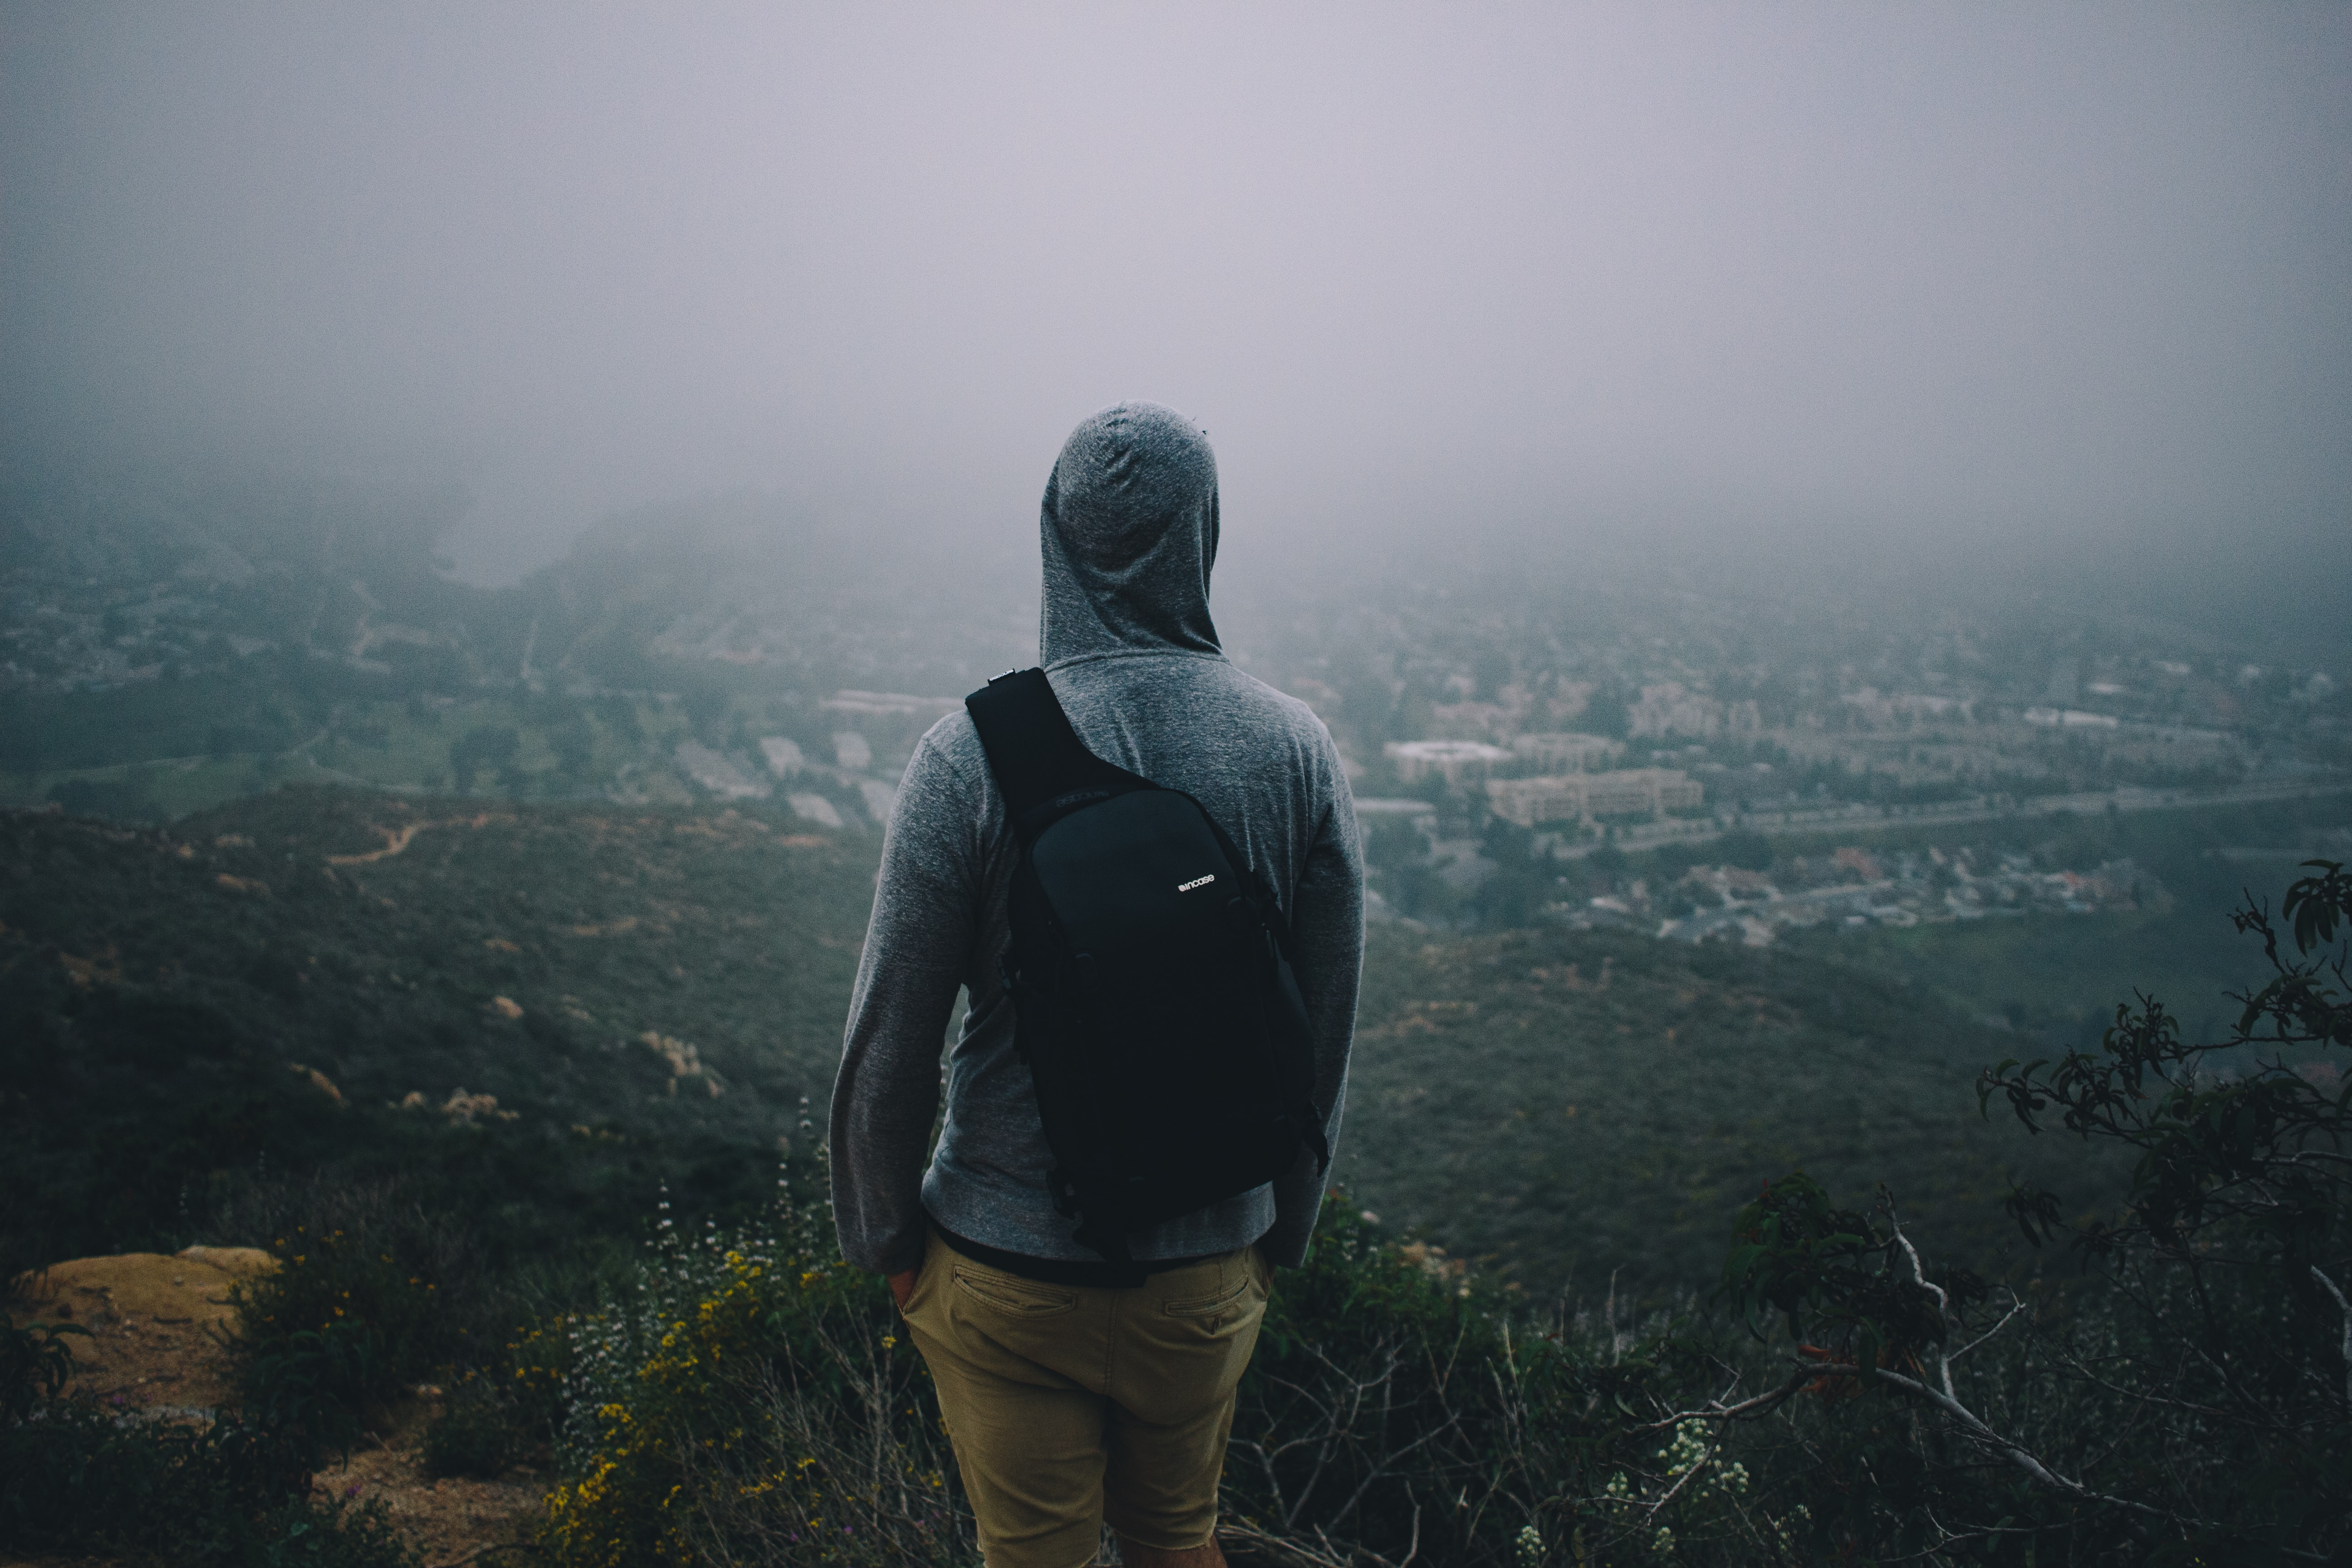 Person looks out at city below after hiking to the top of a rocky bluff